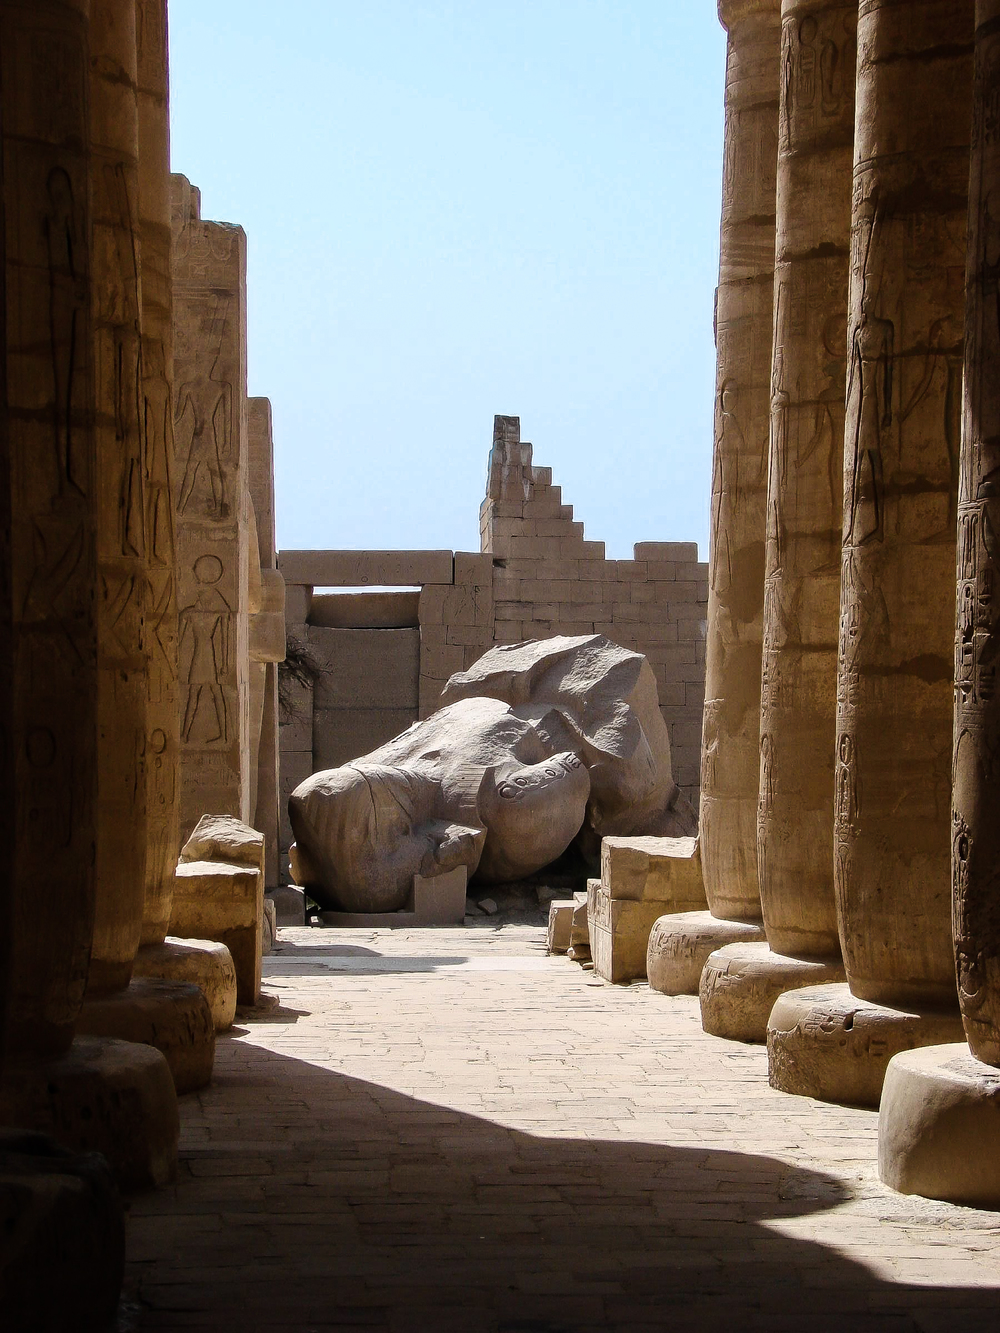 Fallen Empire - Karnak Temple (Luxor, Egypt)